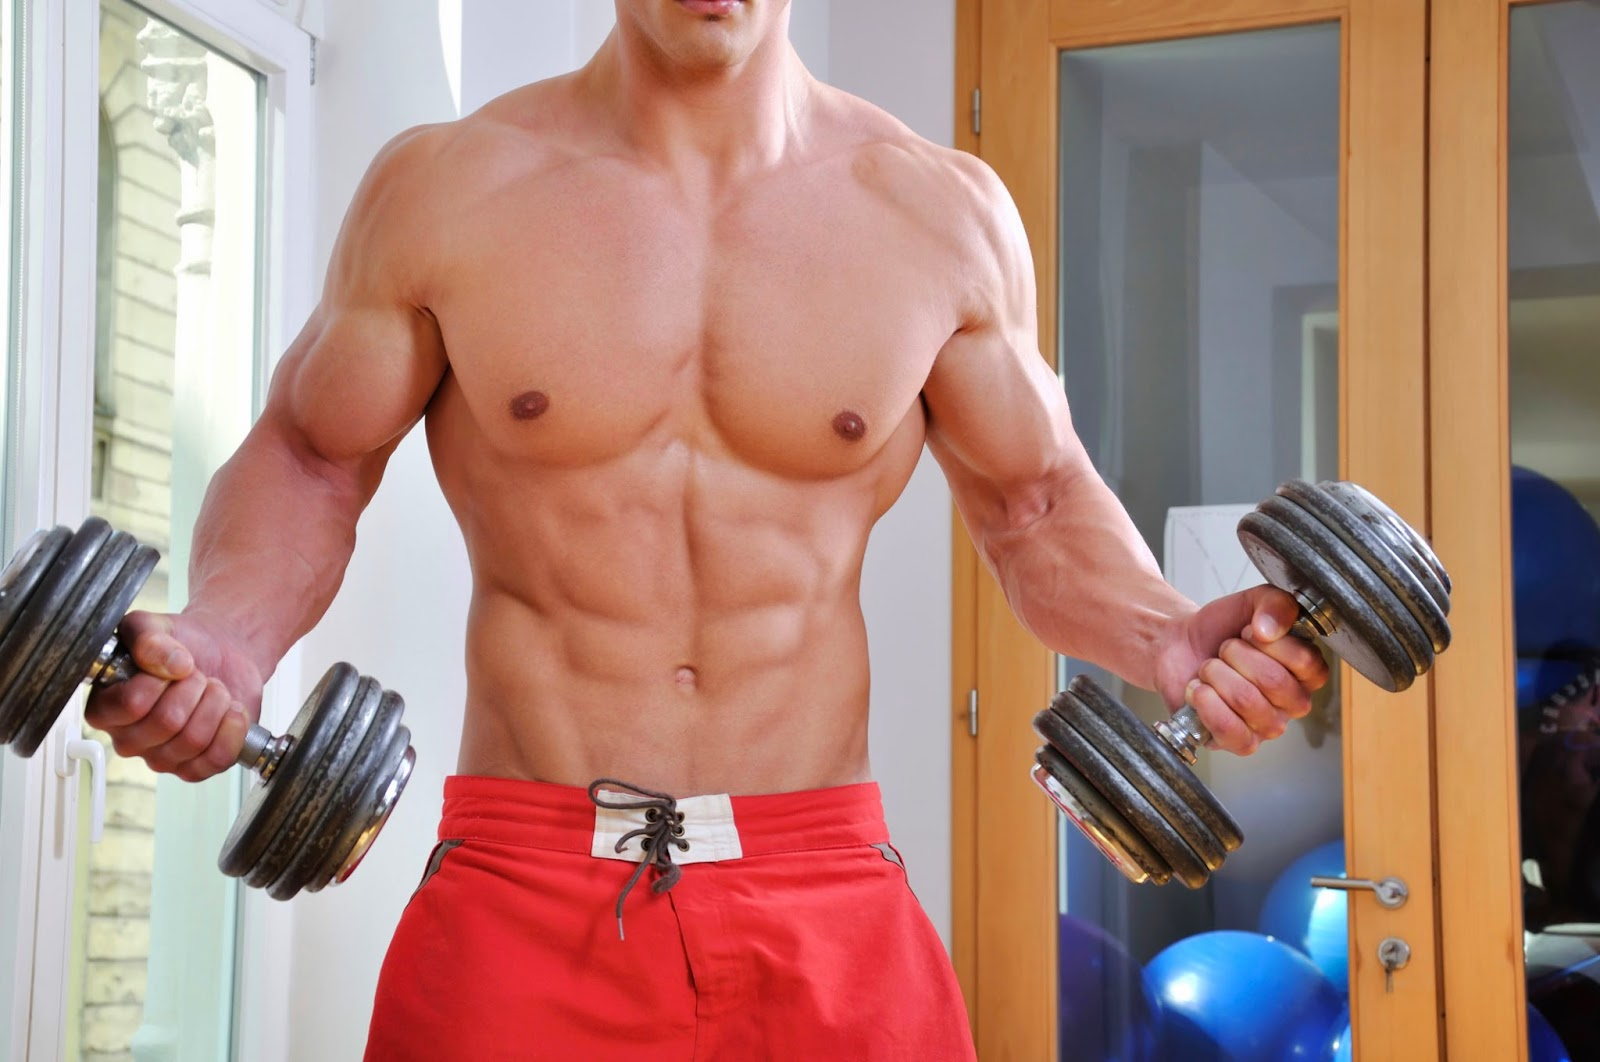 Top 10 Workout Tips to Get Ripped